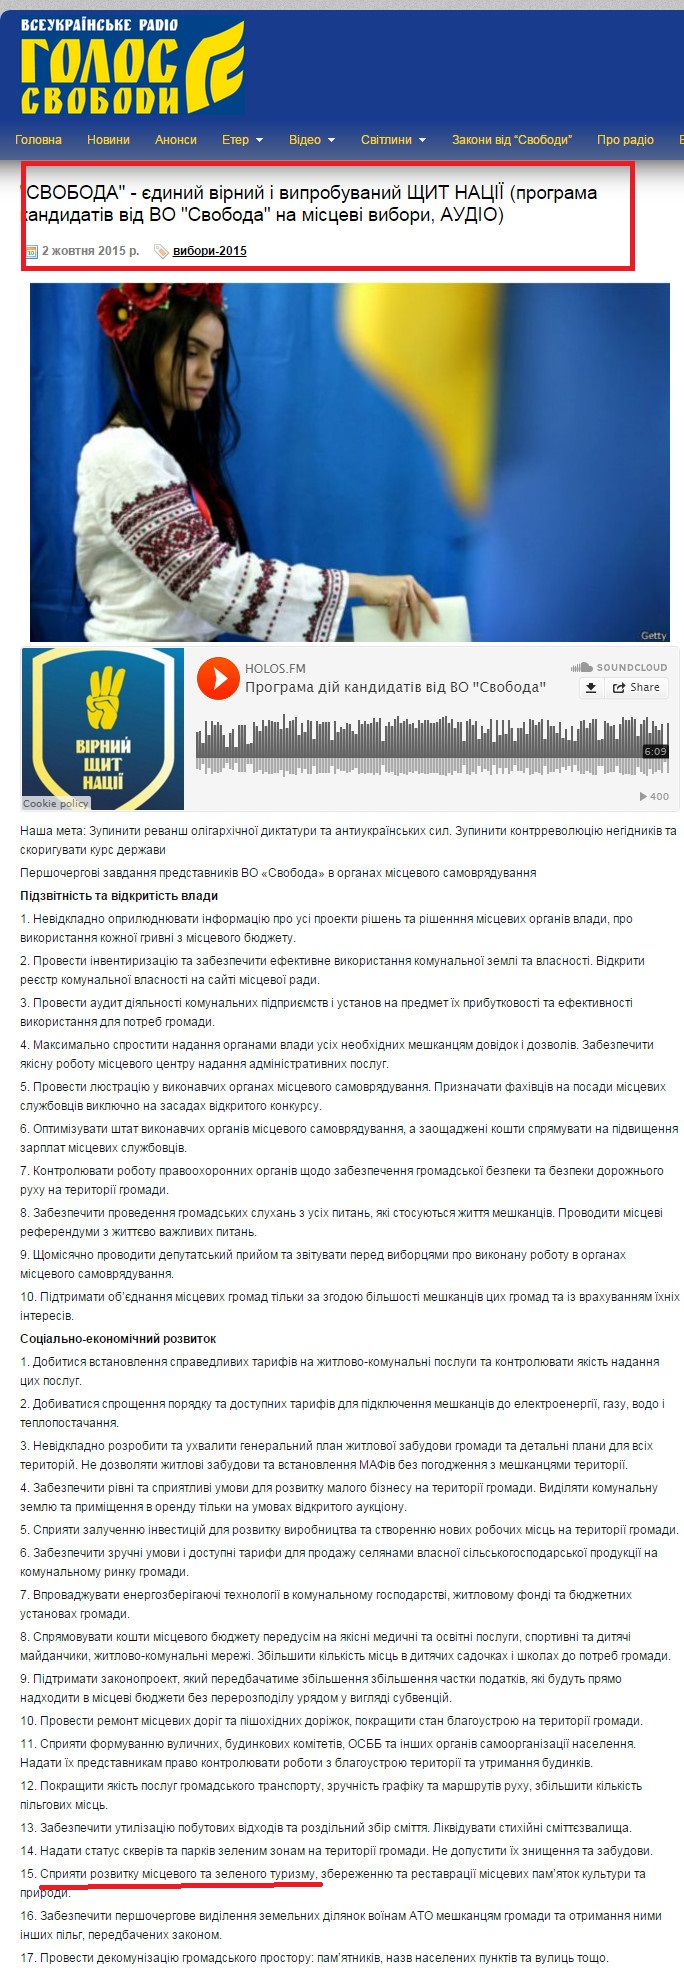 http://holos.fm/page/vo-svoboda-yedinij-virnij-i-viprobuvanij-shhit-naciyi-programa-svobodi-na-miscevi-vibori?utm_source=holos&utm_source=holos&utm_medium=banner&utm_content=local_elections&utm_campaign=vibori2015